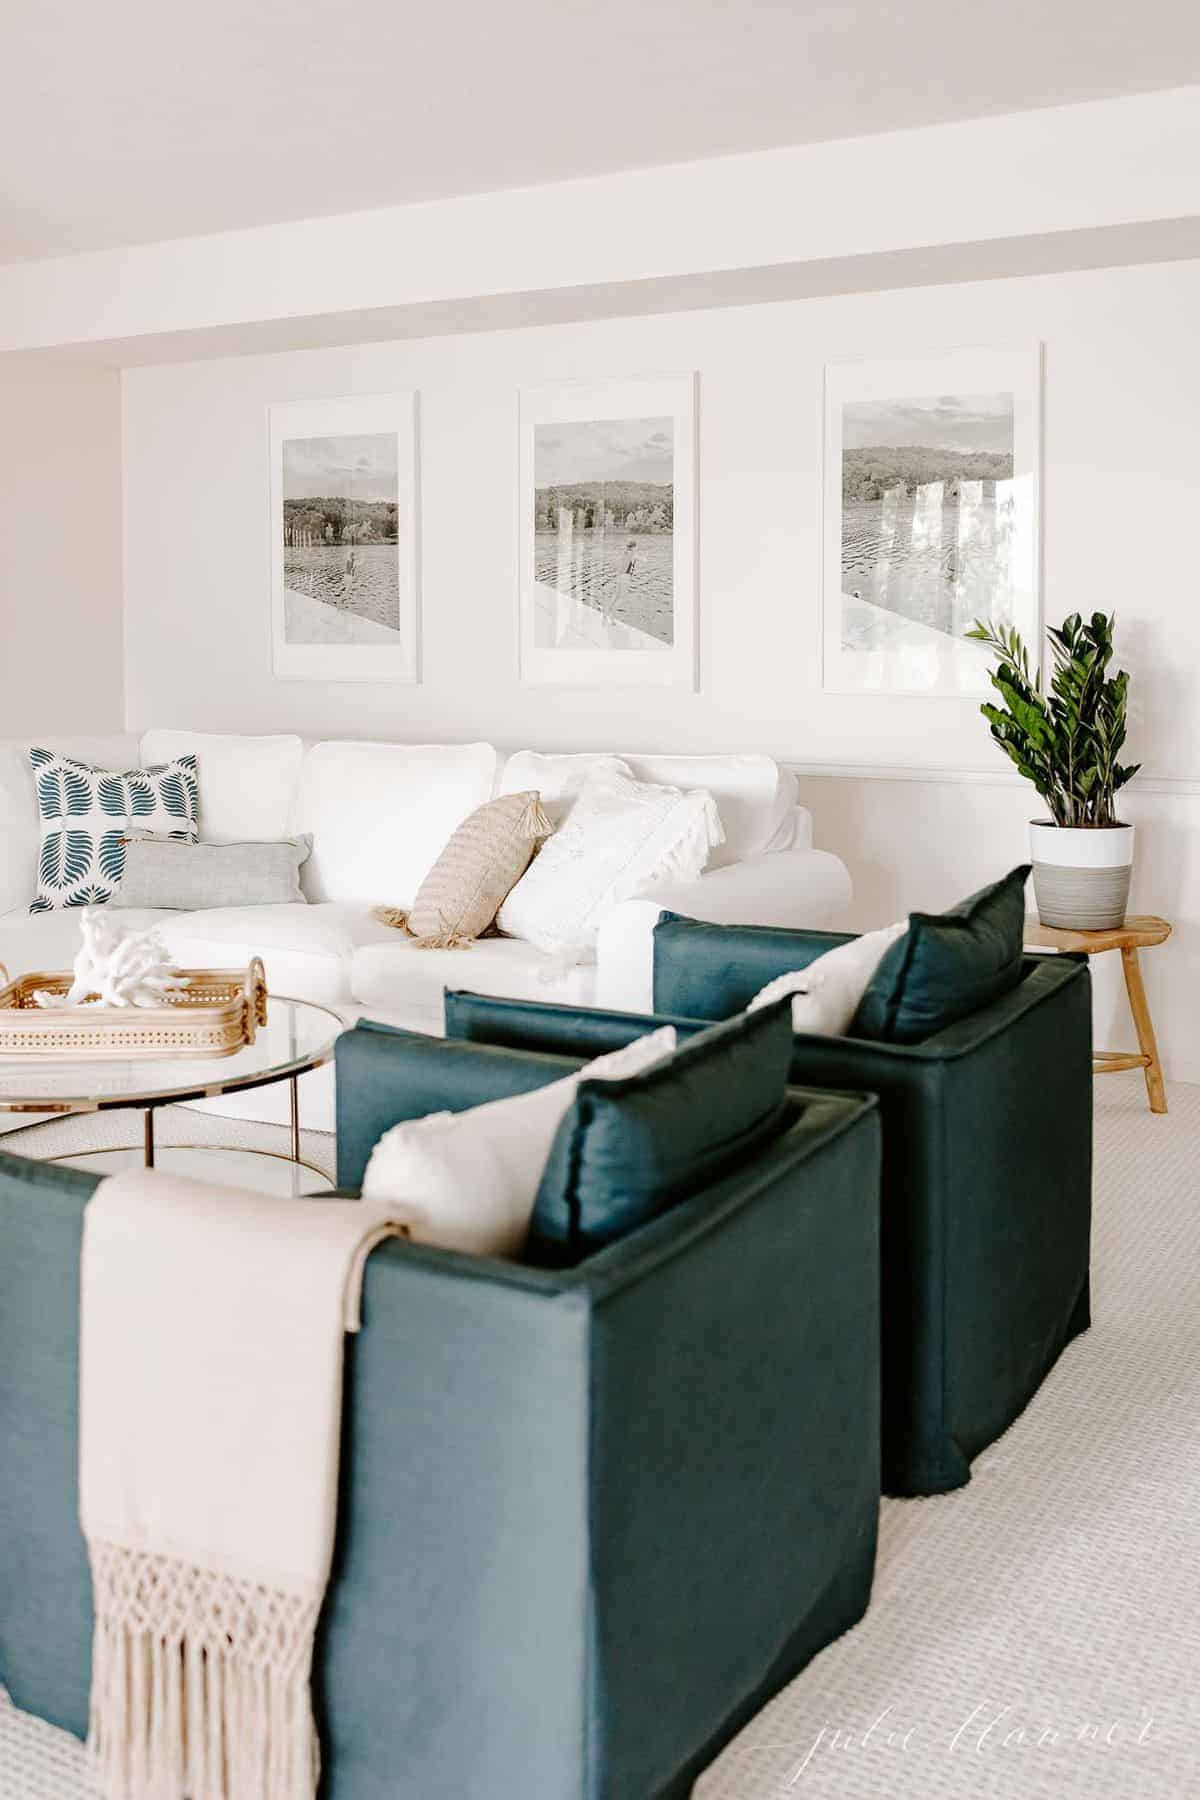 Living room scene with large photos on the wall and a wooden side table featuring a houseplant. #zzplant #zzplantcare